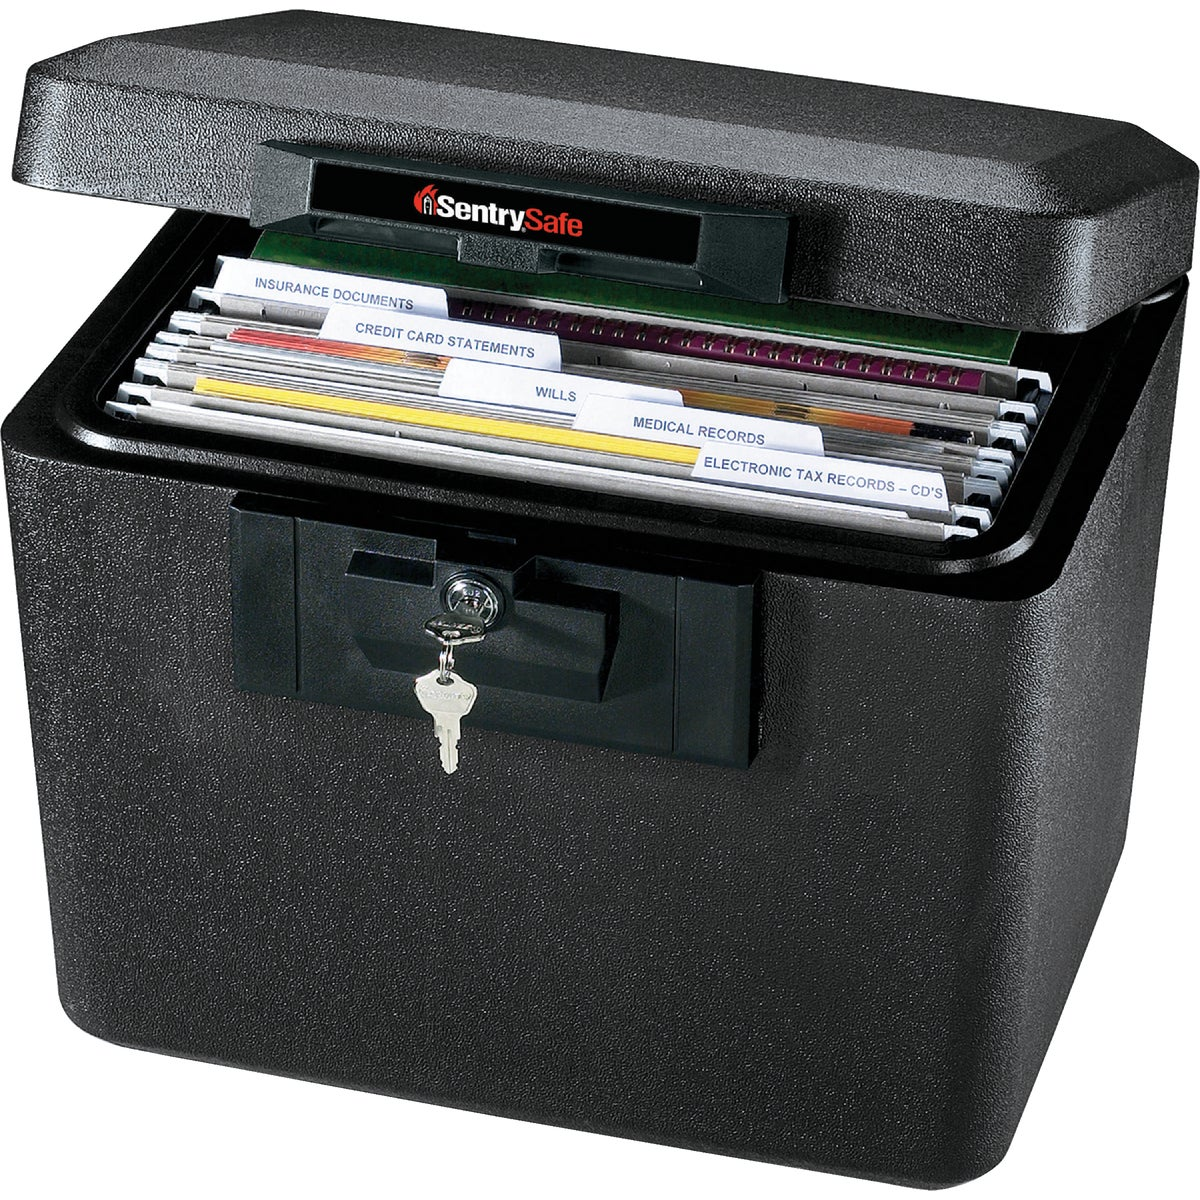 SECURITY FILE - 1170 by Sentry Safes